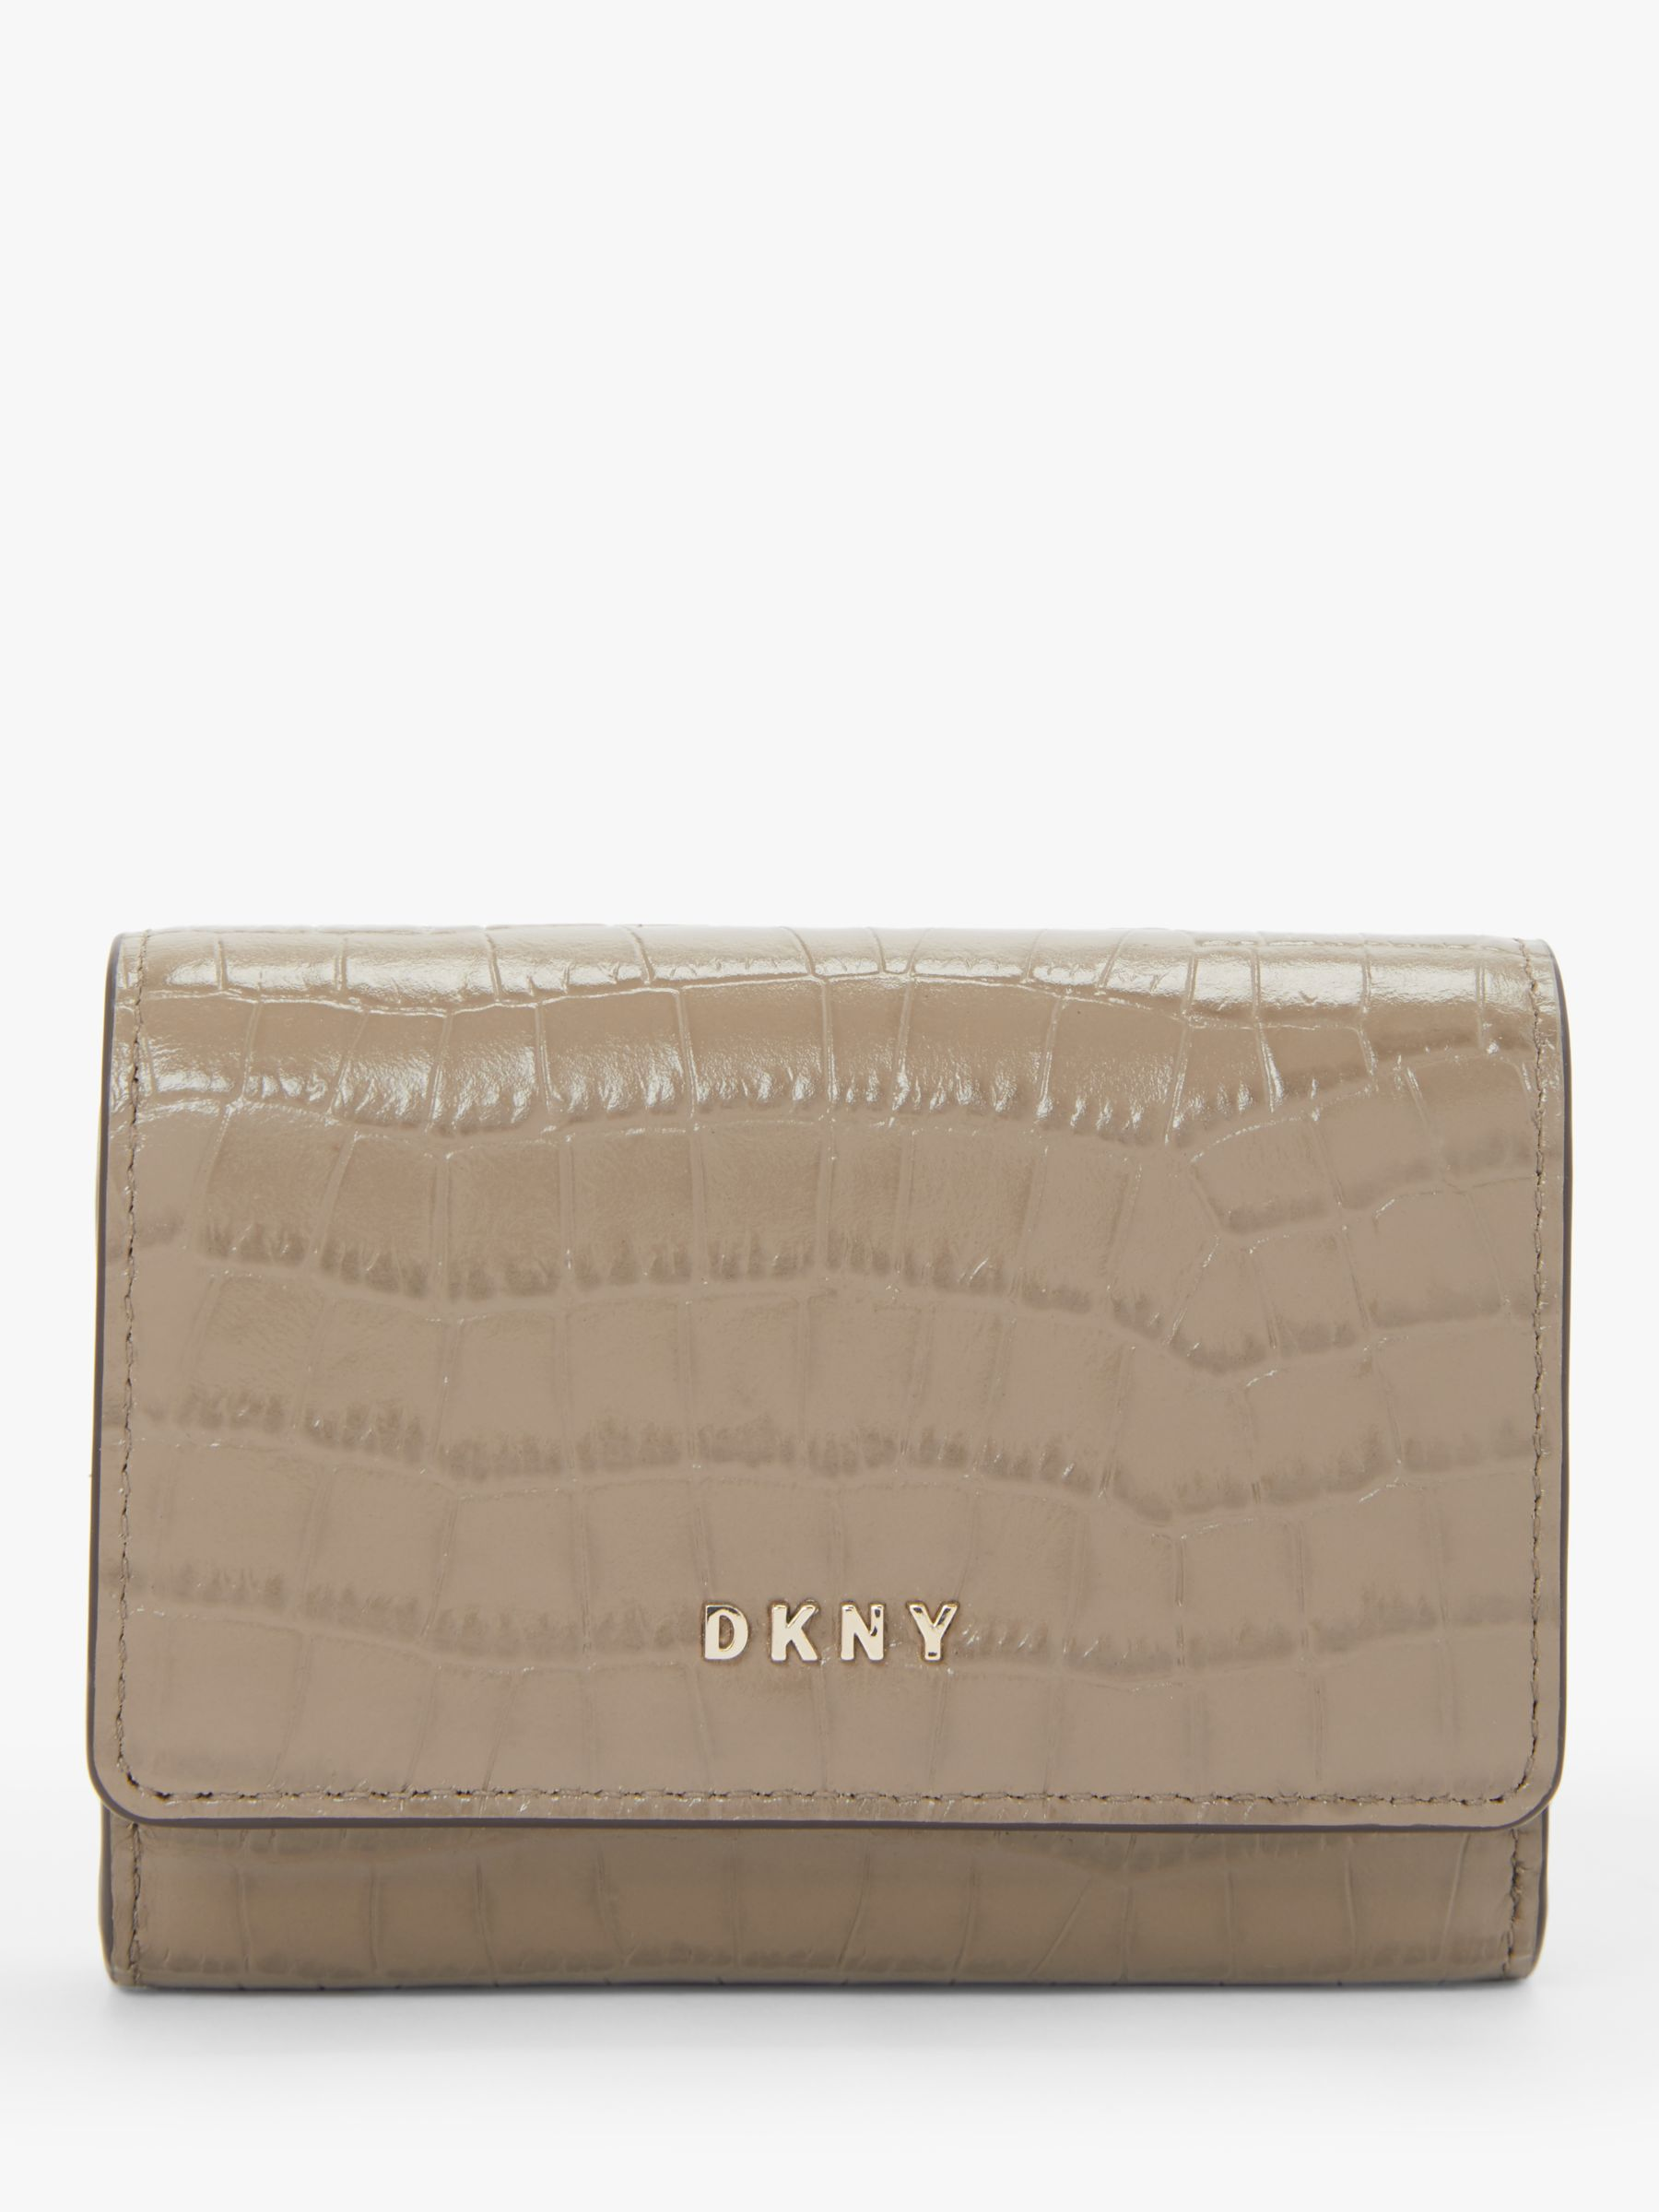 DKNY DKNY Bryant Croc Embossed Leather Flapover Card Purse, Dune